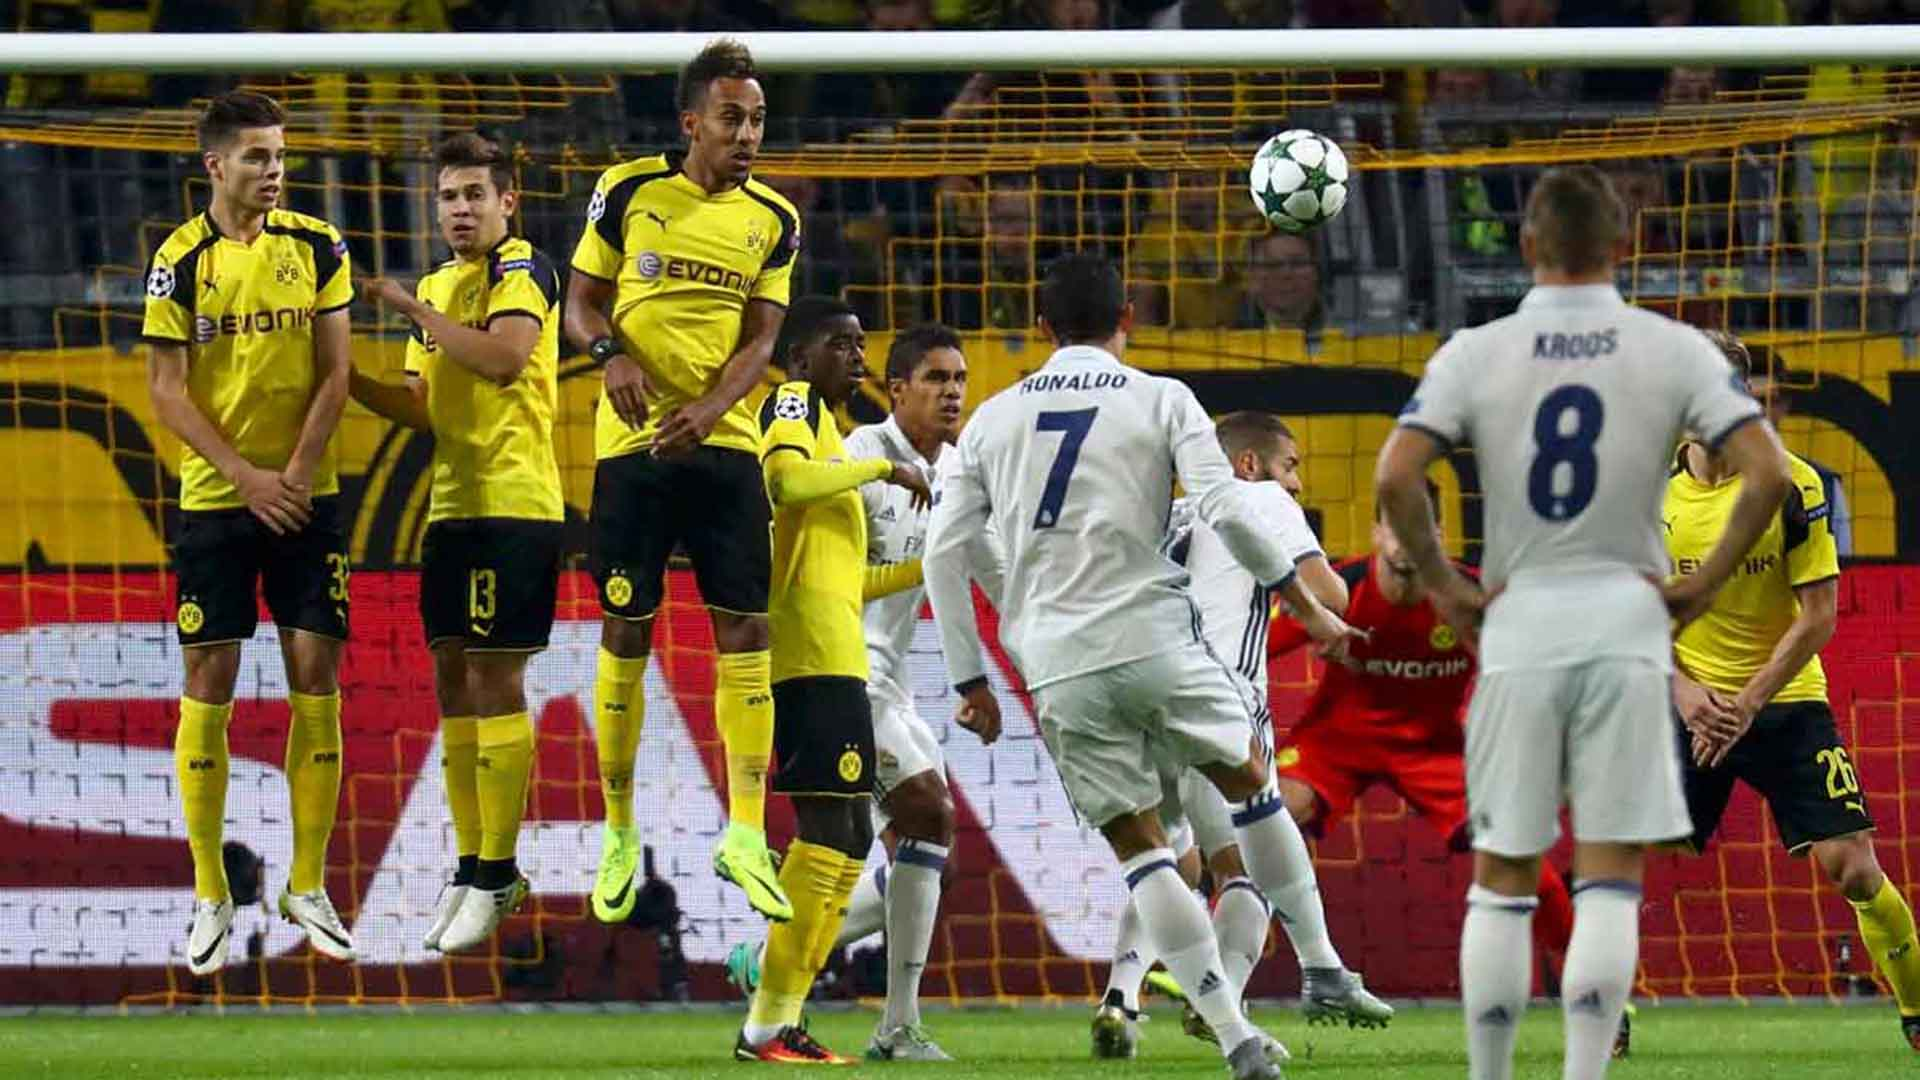 Dortmund pierde ante el Real Madrid y sale de la Champions League (VIDEO)